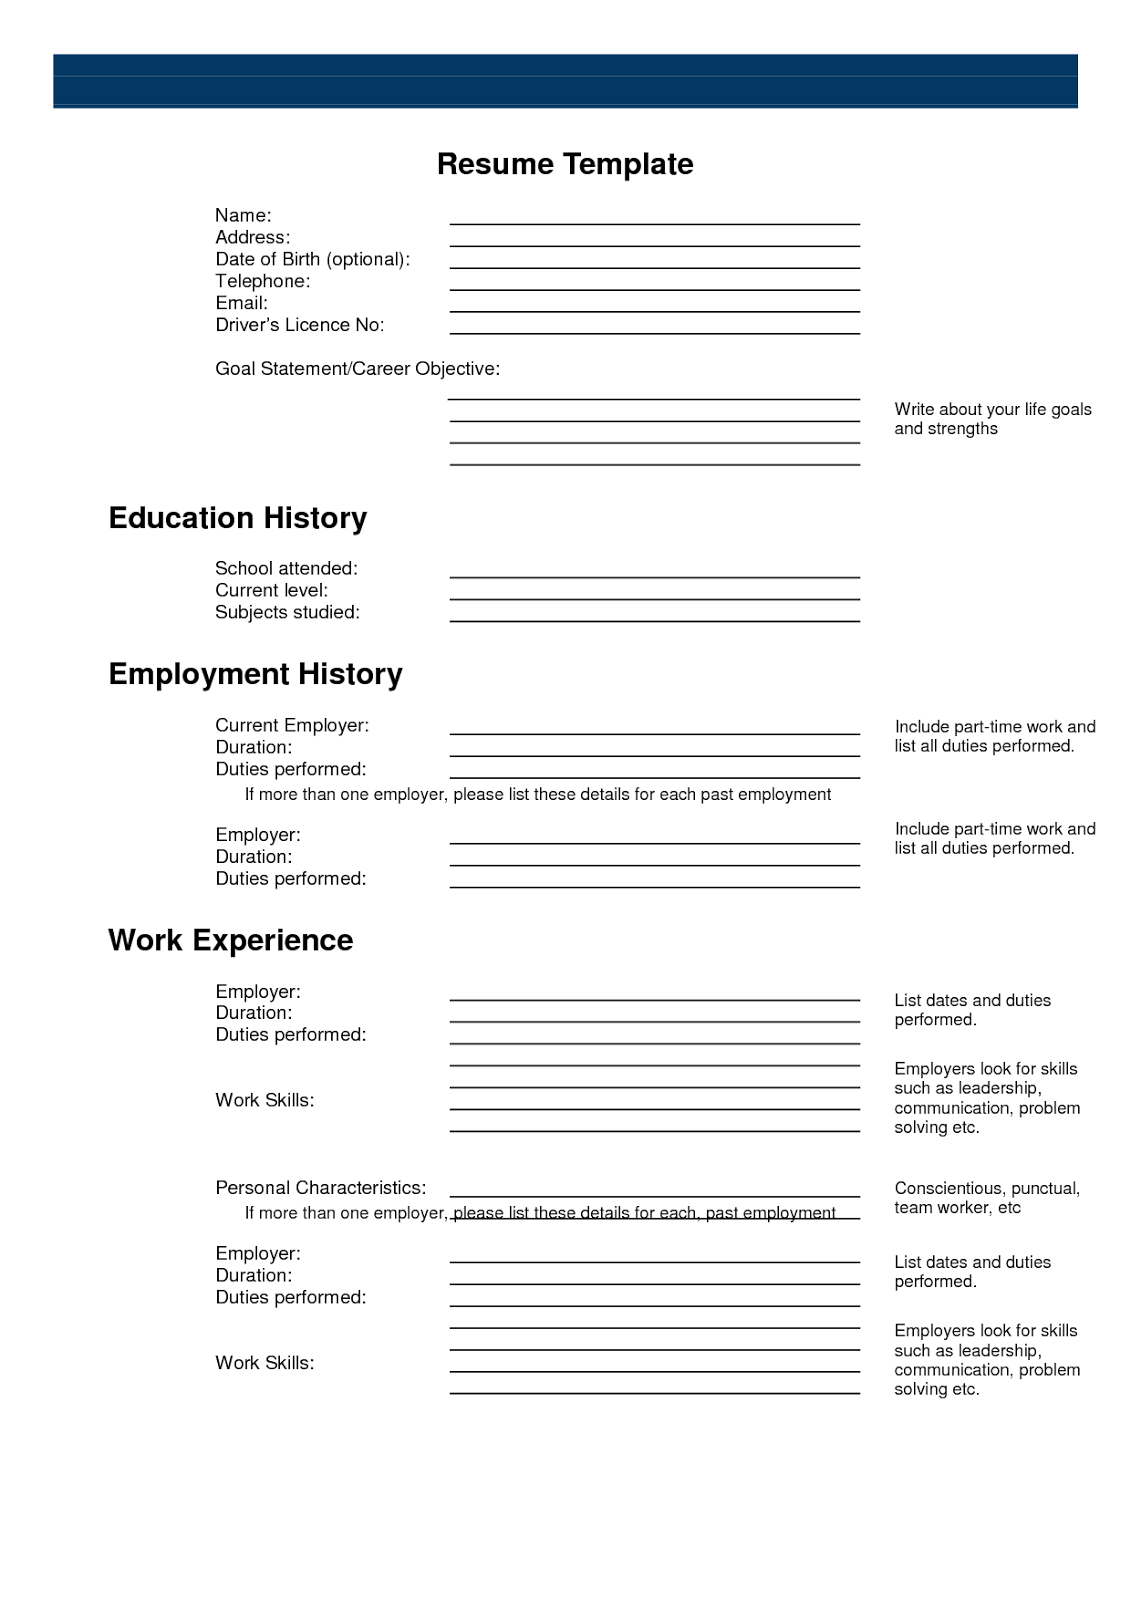 1996394 - Totally Free Resume Template